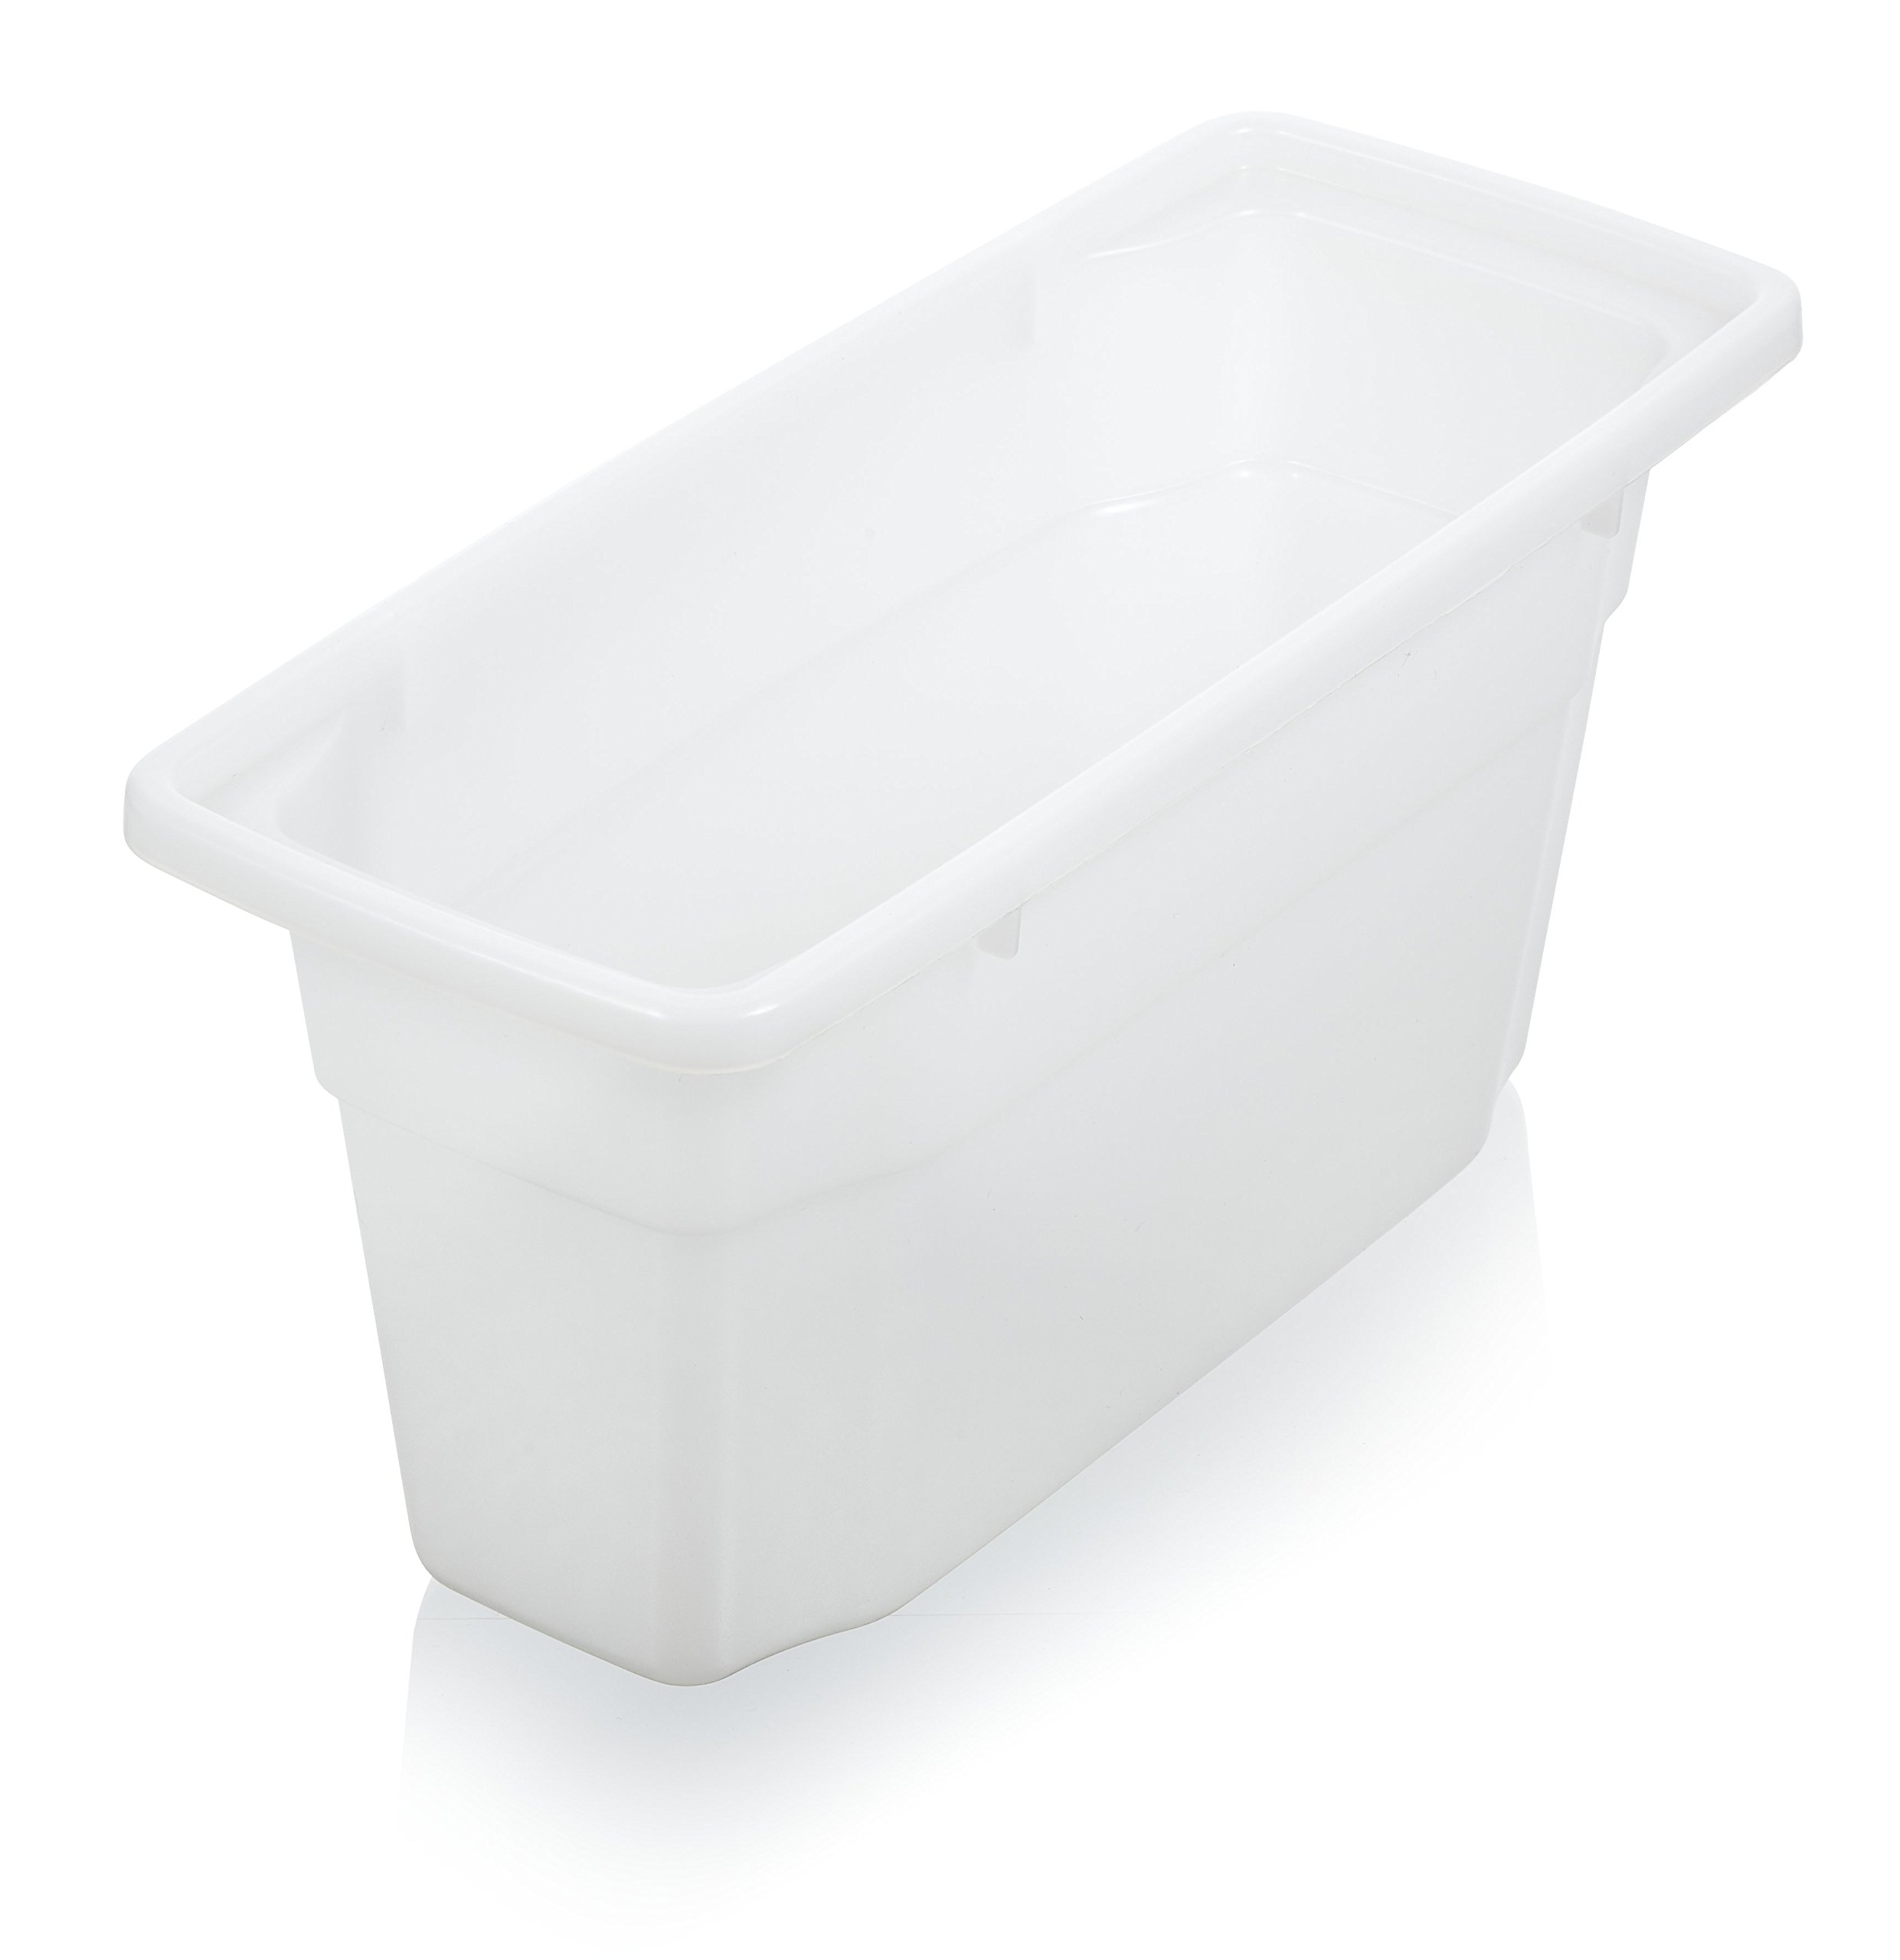 Arrow Home Products 00054 Eezy Out Ice Bin Plastic, White